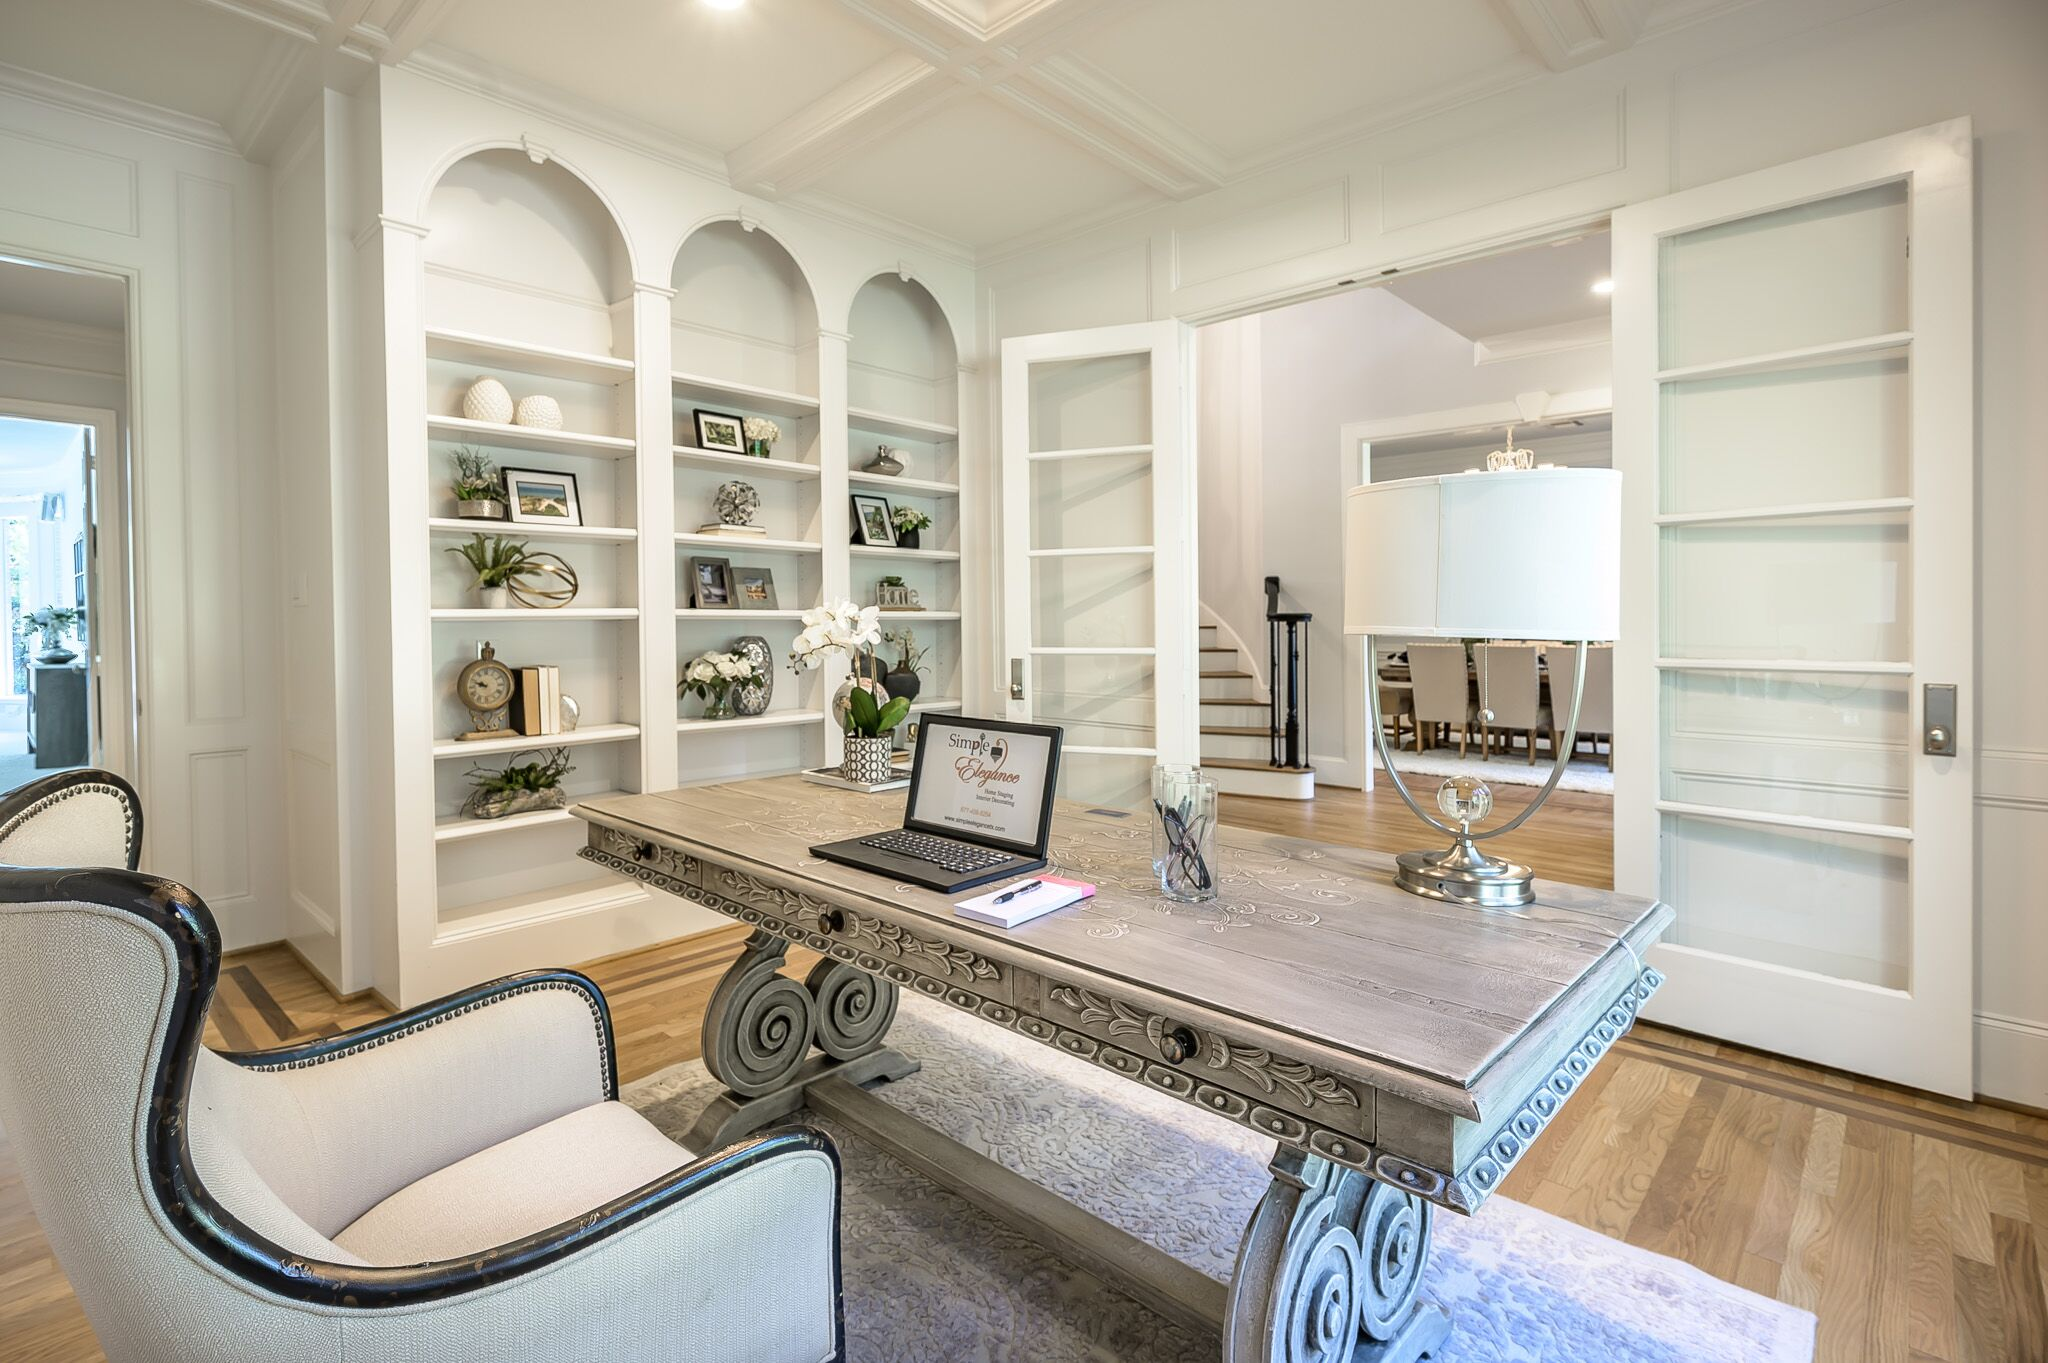 Simple Elegance Houston The Woodlands Tx Vacant Home Staging Interior Design Services